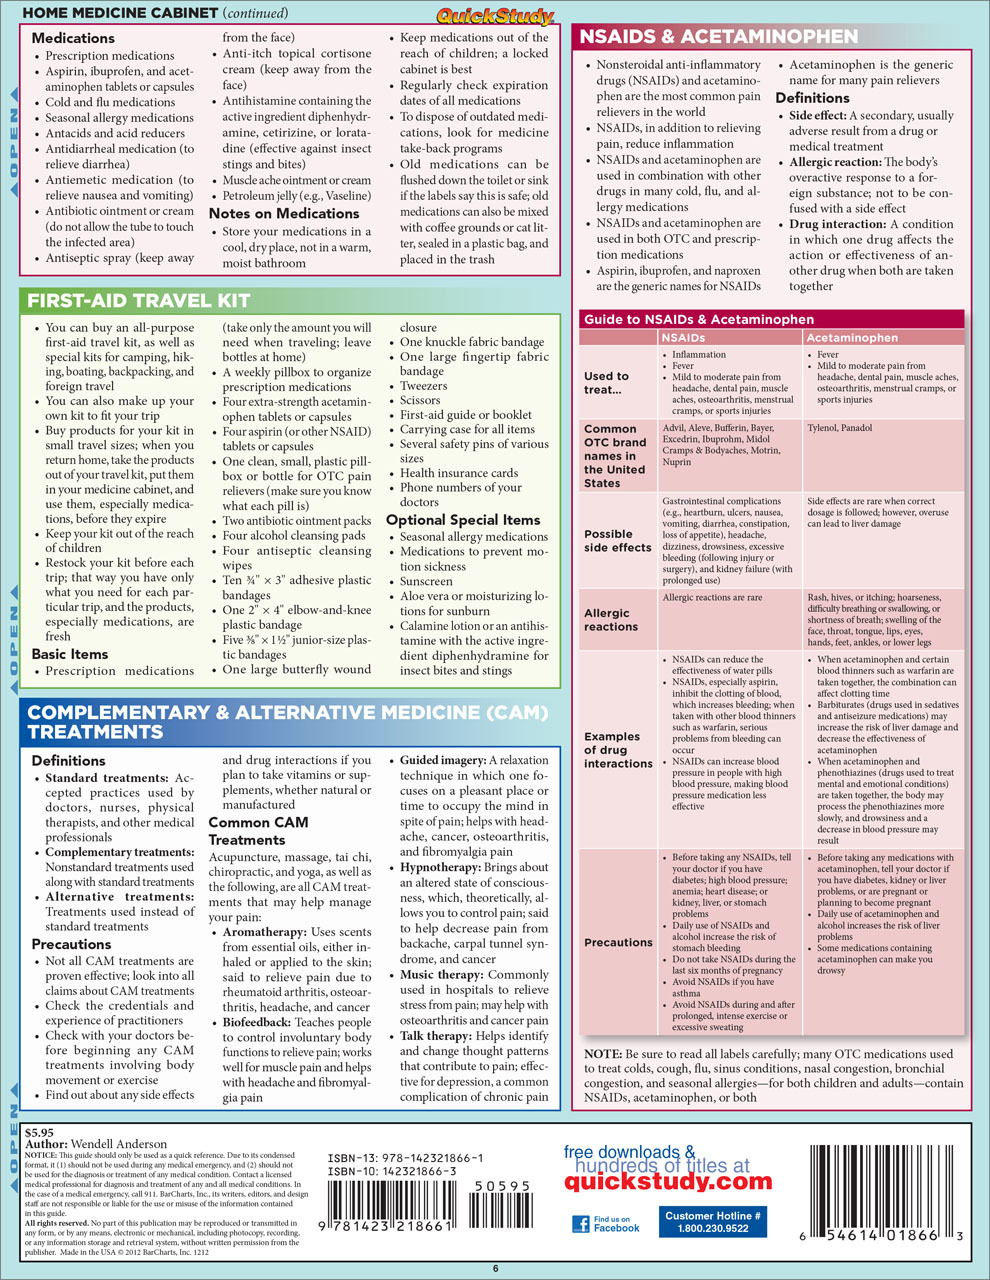 Quick Study QuickStudy First Aid Aches & Pains Laminated Study Guide BarCharts Publishing Inc Health Back Image Image